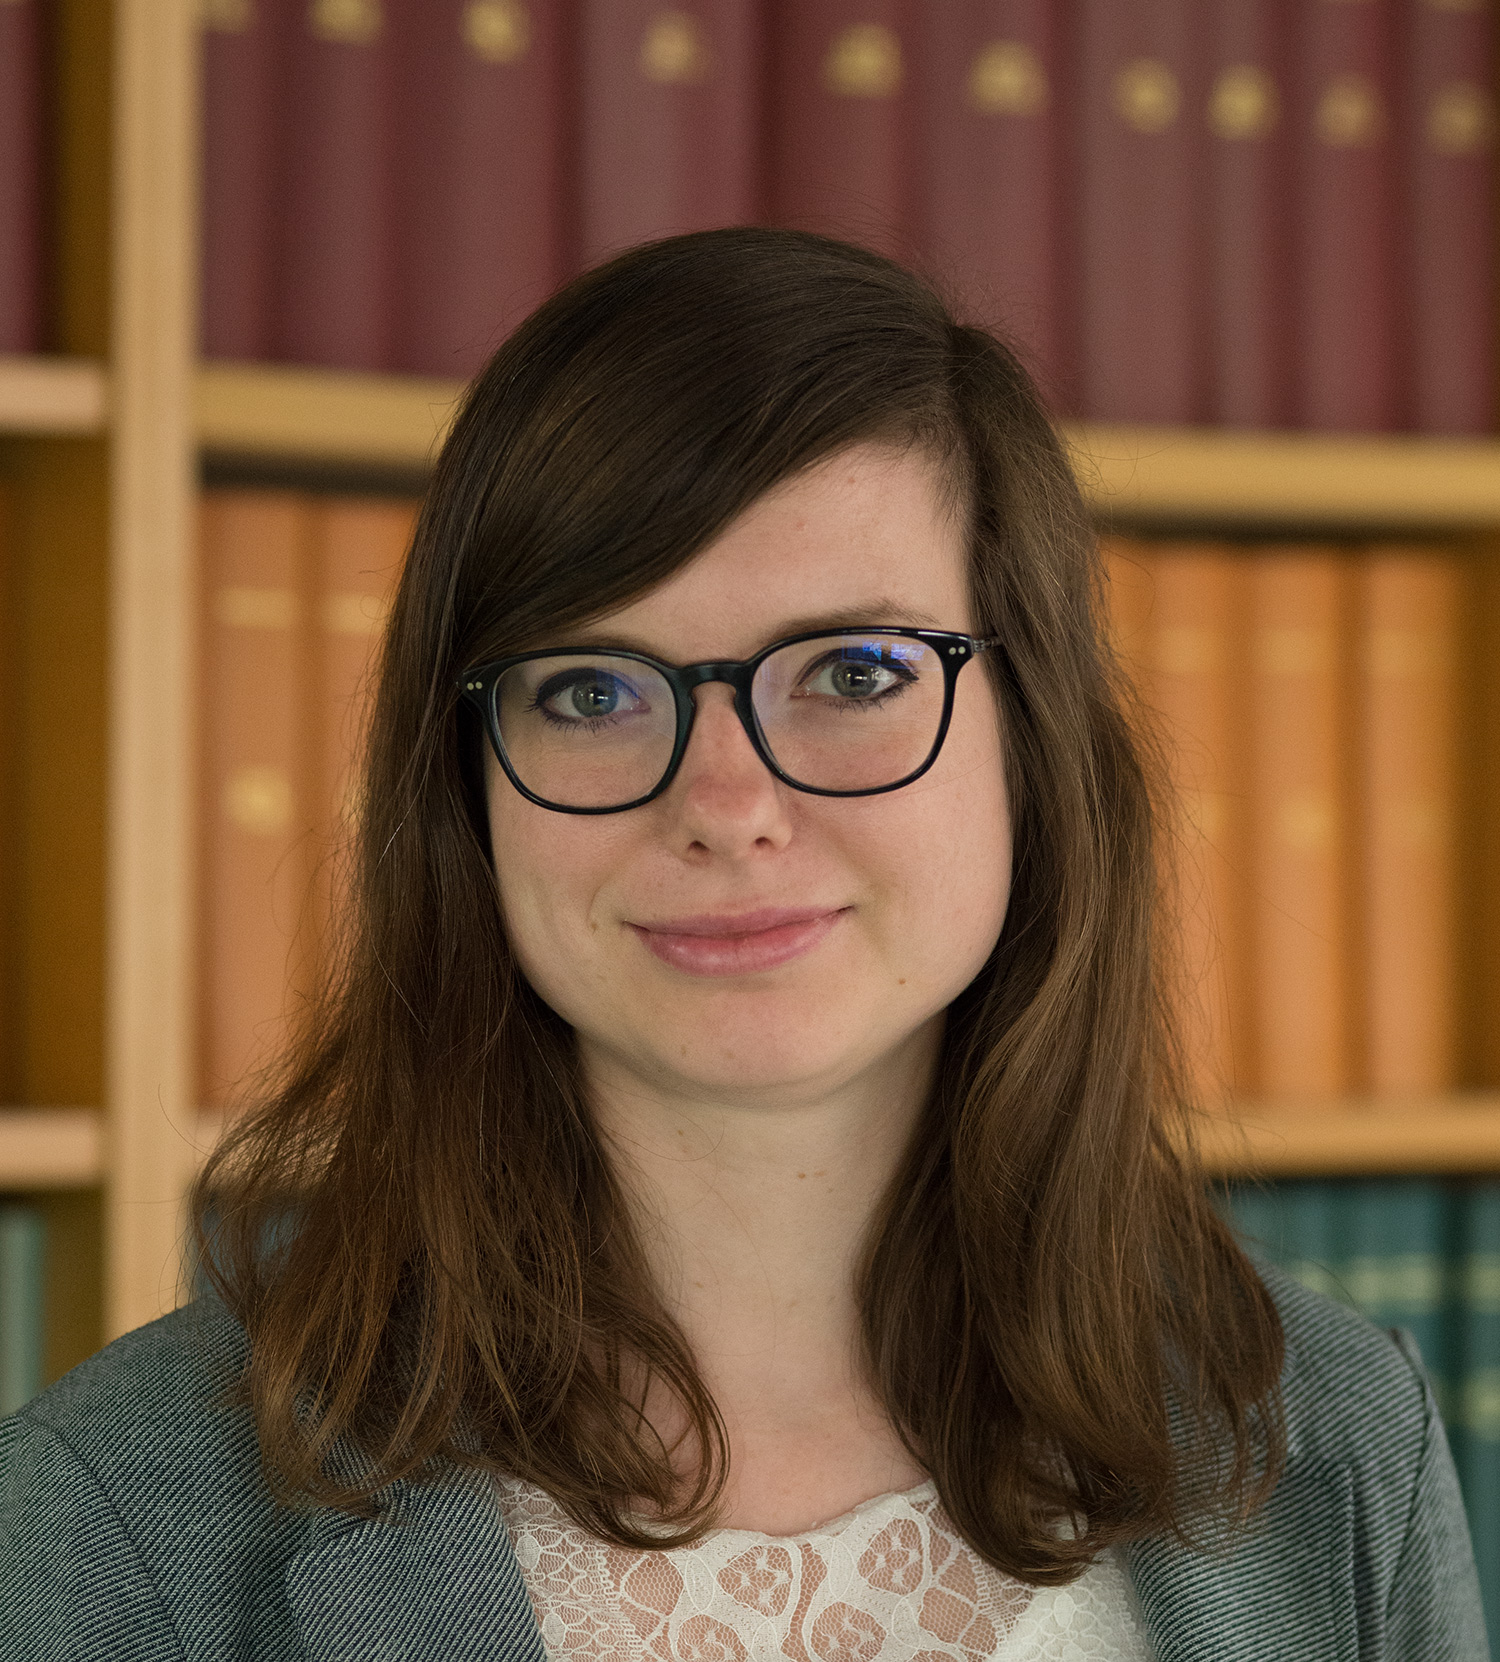 A warm welcome to dr magdalena baaske mrc brain network dynamics we are pleased to welcome dr magdalena baaske to the unit as a rosetrees trust fellow in the sharott and brown groups magdalena received her md from the thecheapjerseys Images